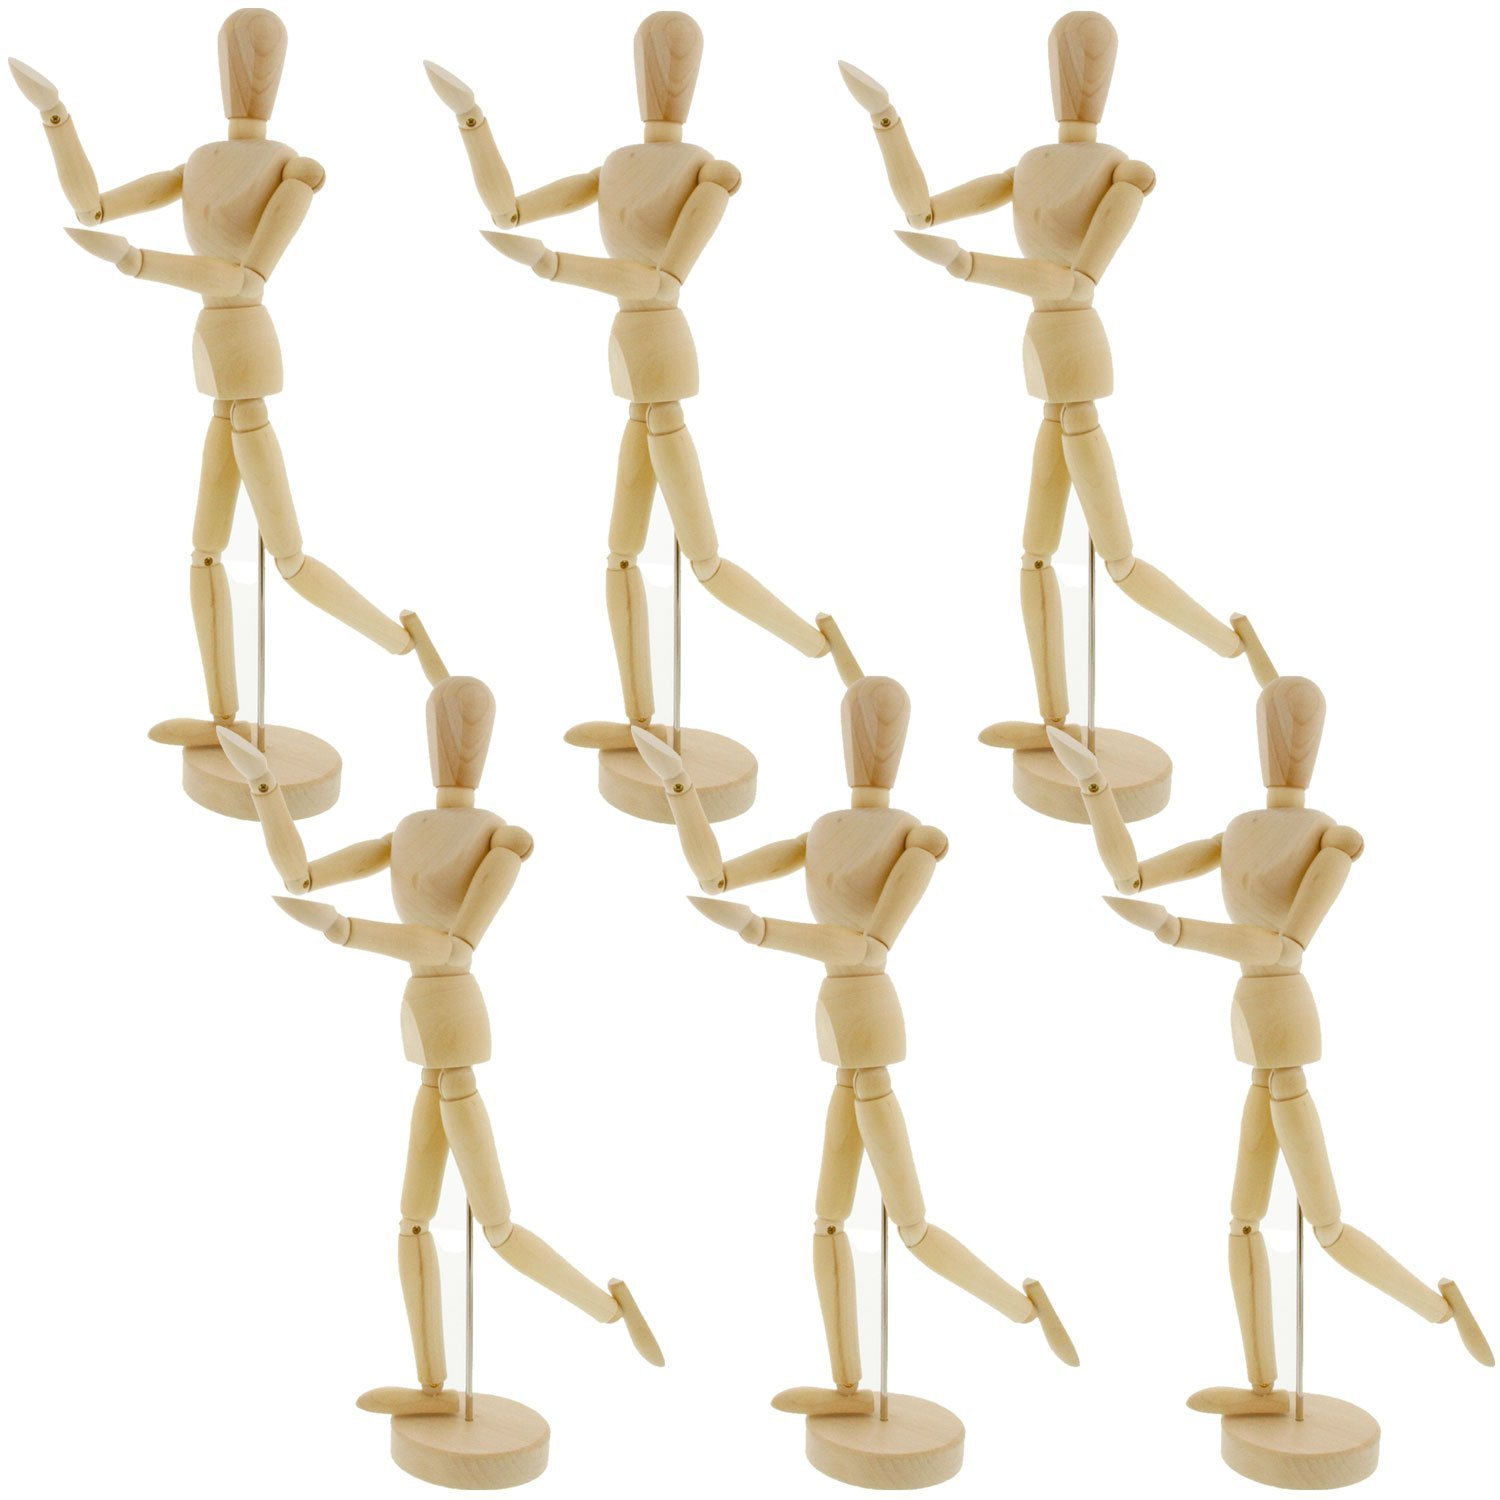 US Art Supply Wood 8'' Artist Drawing Manikin Articulated Mannequin with Base and Flexible Body - Perfect For Drawing the Human Figure (8'' Male) Pack of 6 Manikins by US Art Supply